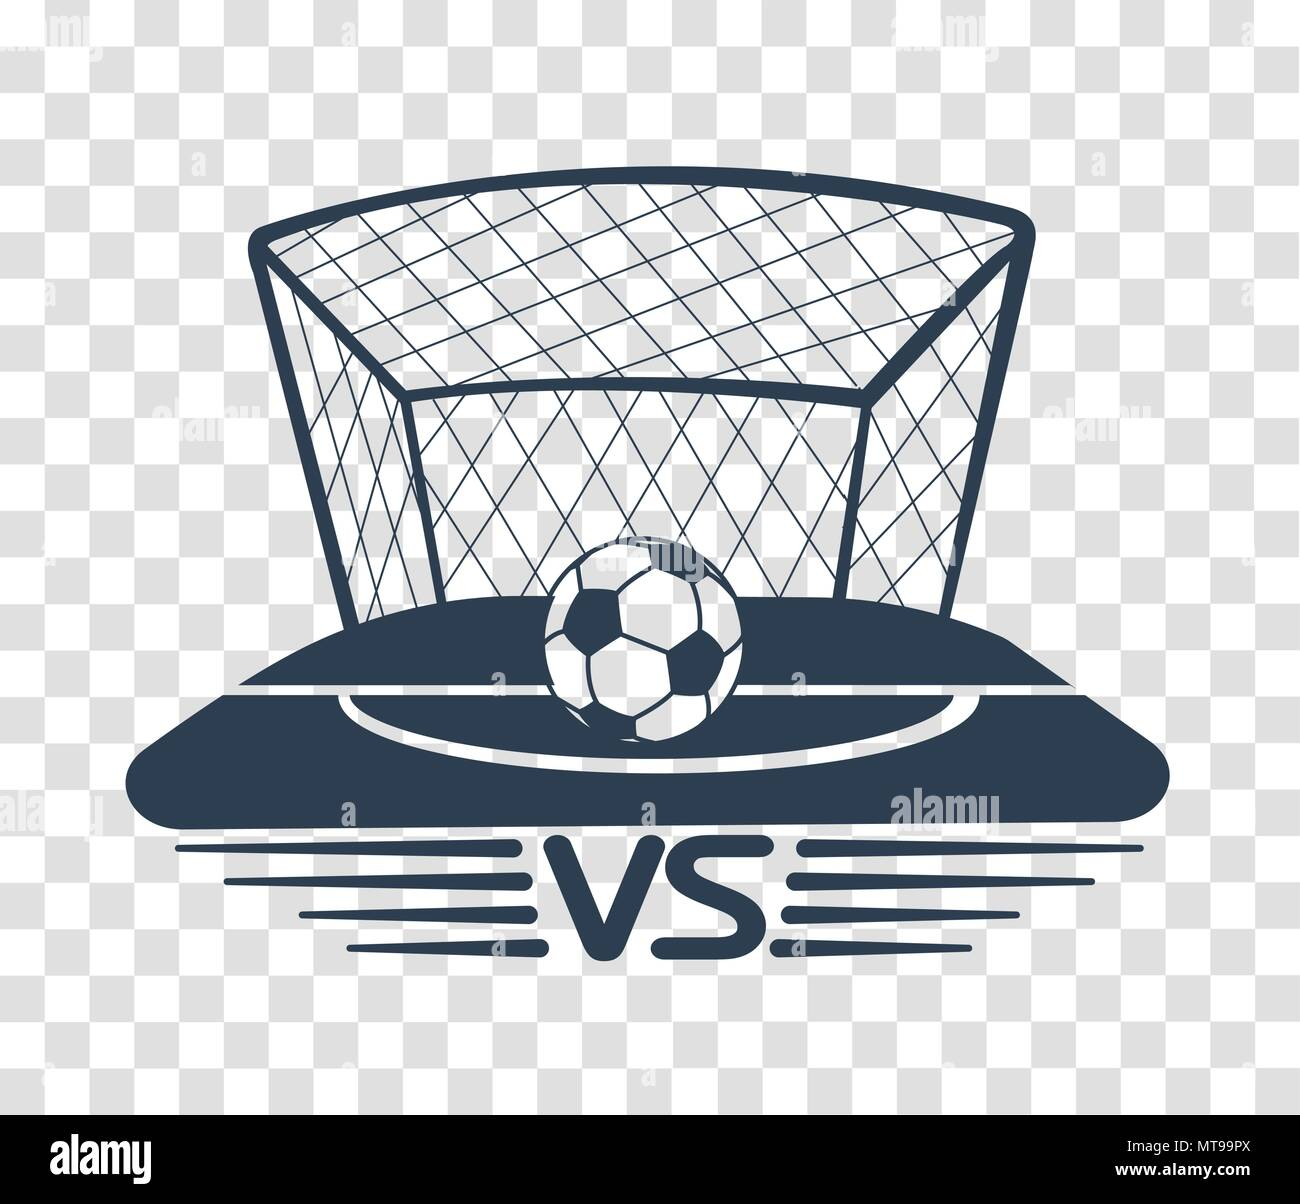 football battles icon. silhouette battle vs match, game concept competitive vs. - Stock Vector